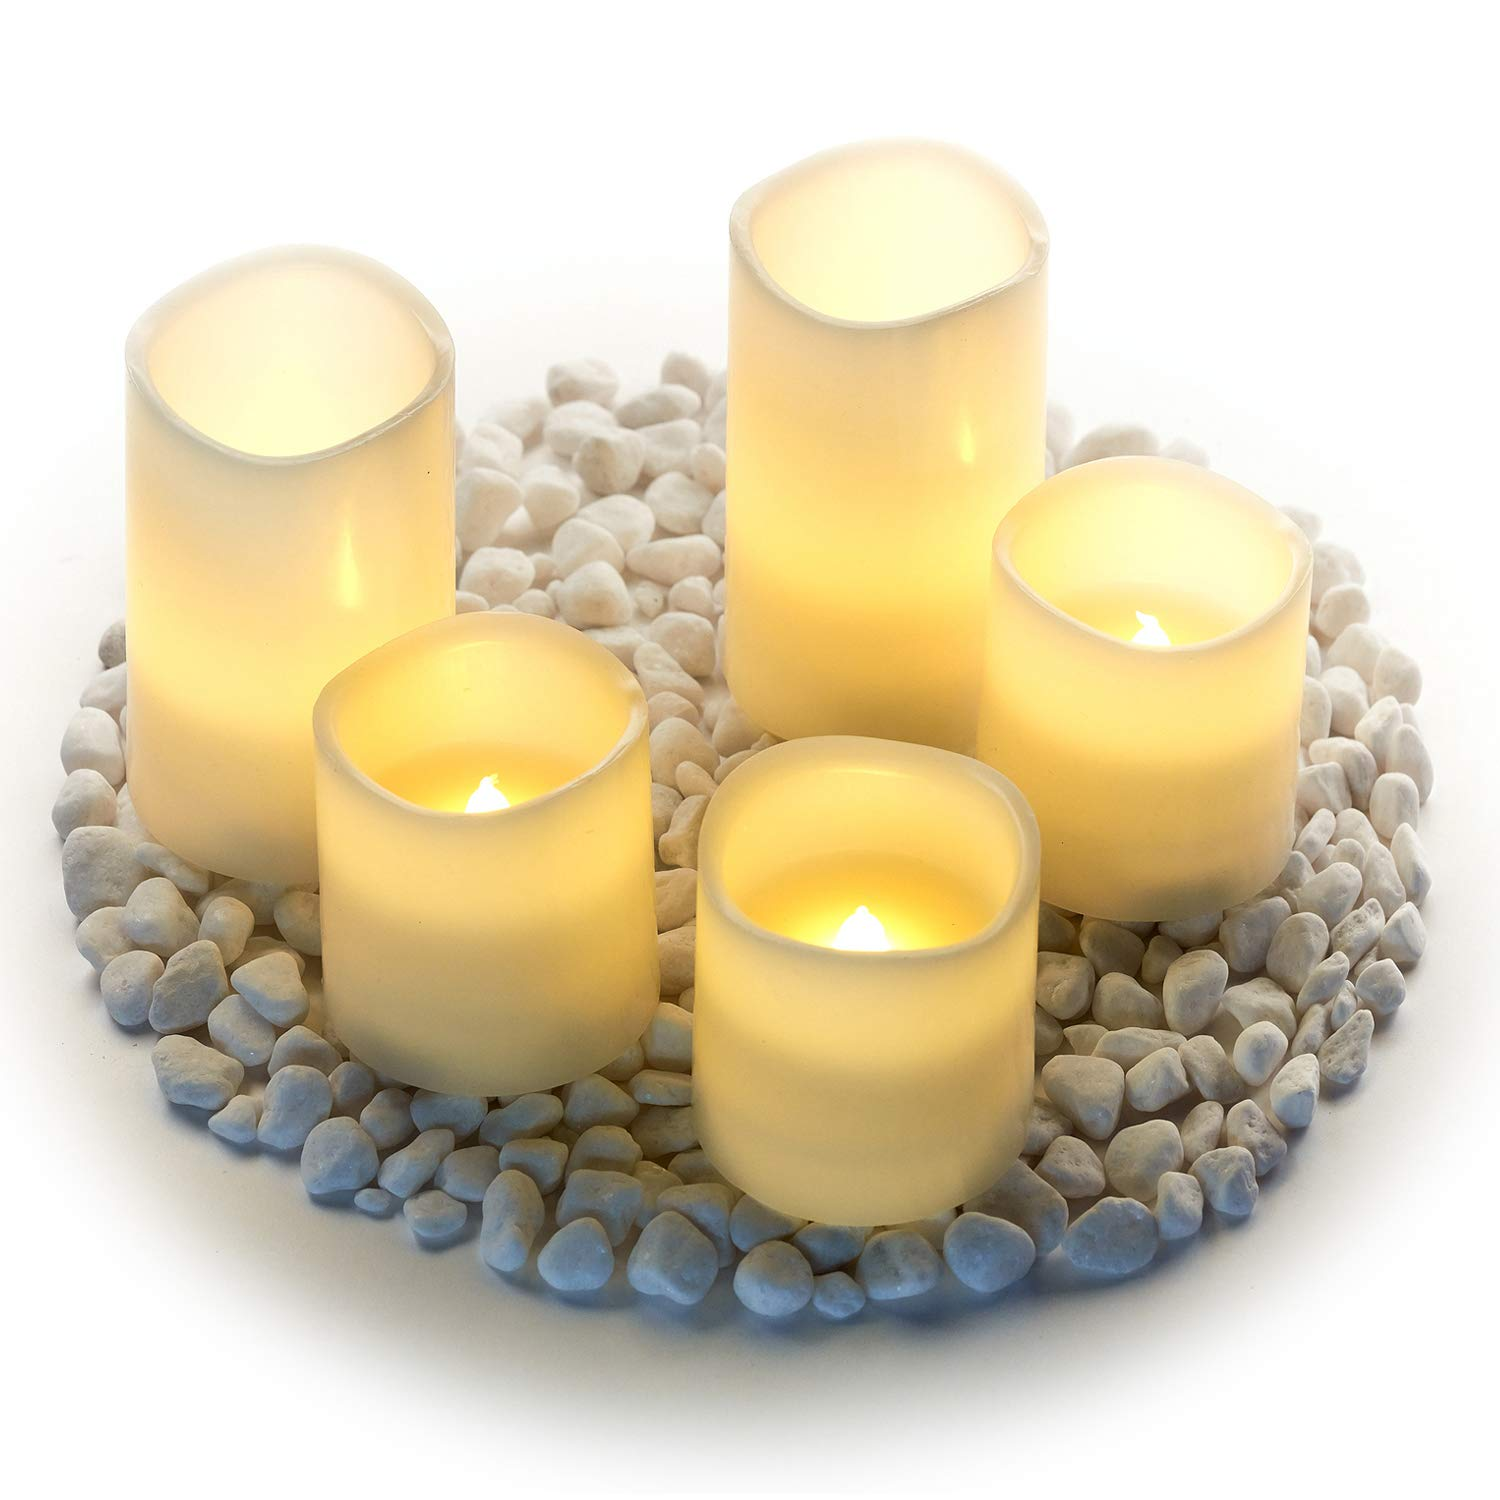 Hayley Cherie - Real Wax Flameless Candles with Timer (Set of 5) - LED Candles 5'' and 3'' Tall - Flickering Amber Flame - Battery Operated Pillar Candles - Large Unscented (Ivory)